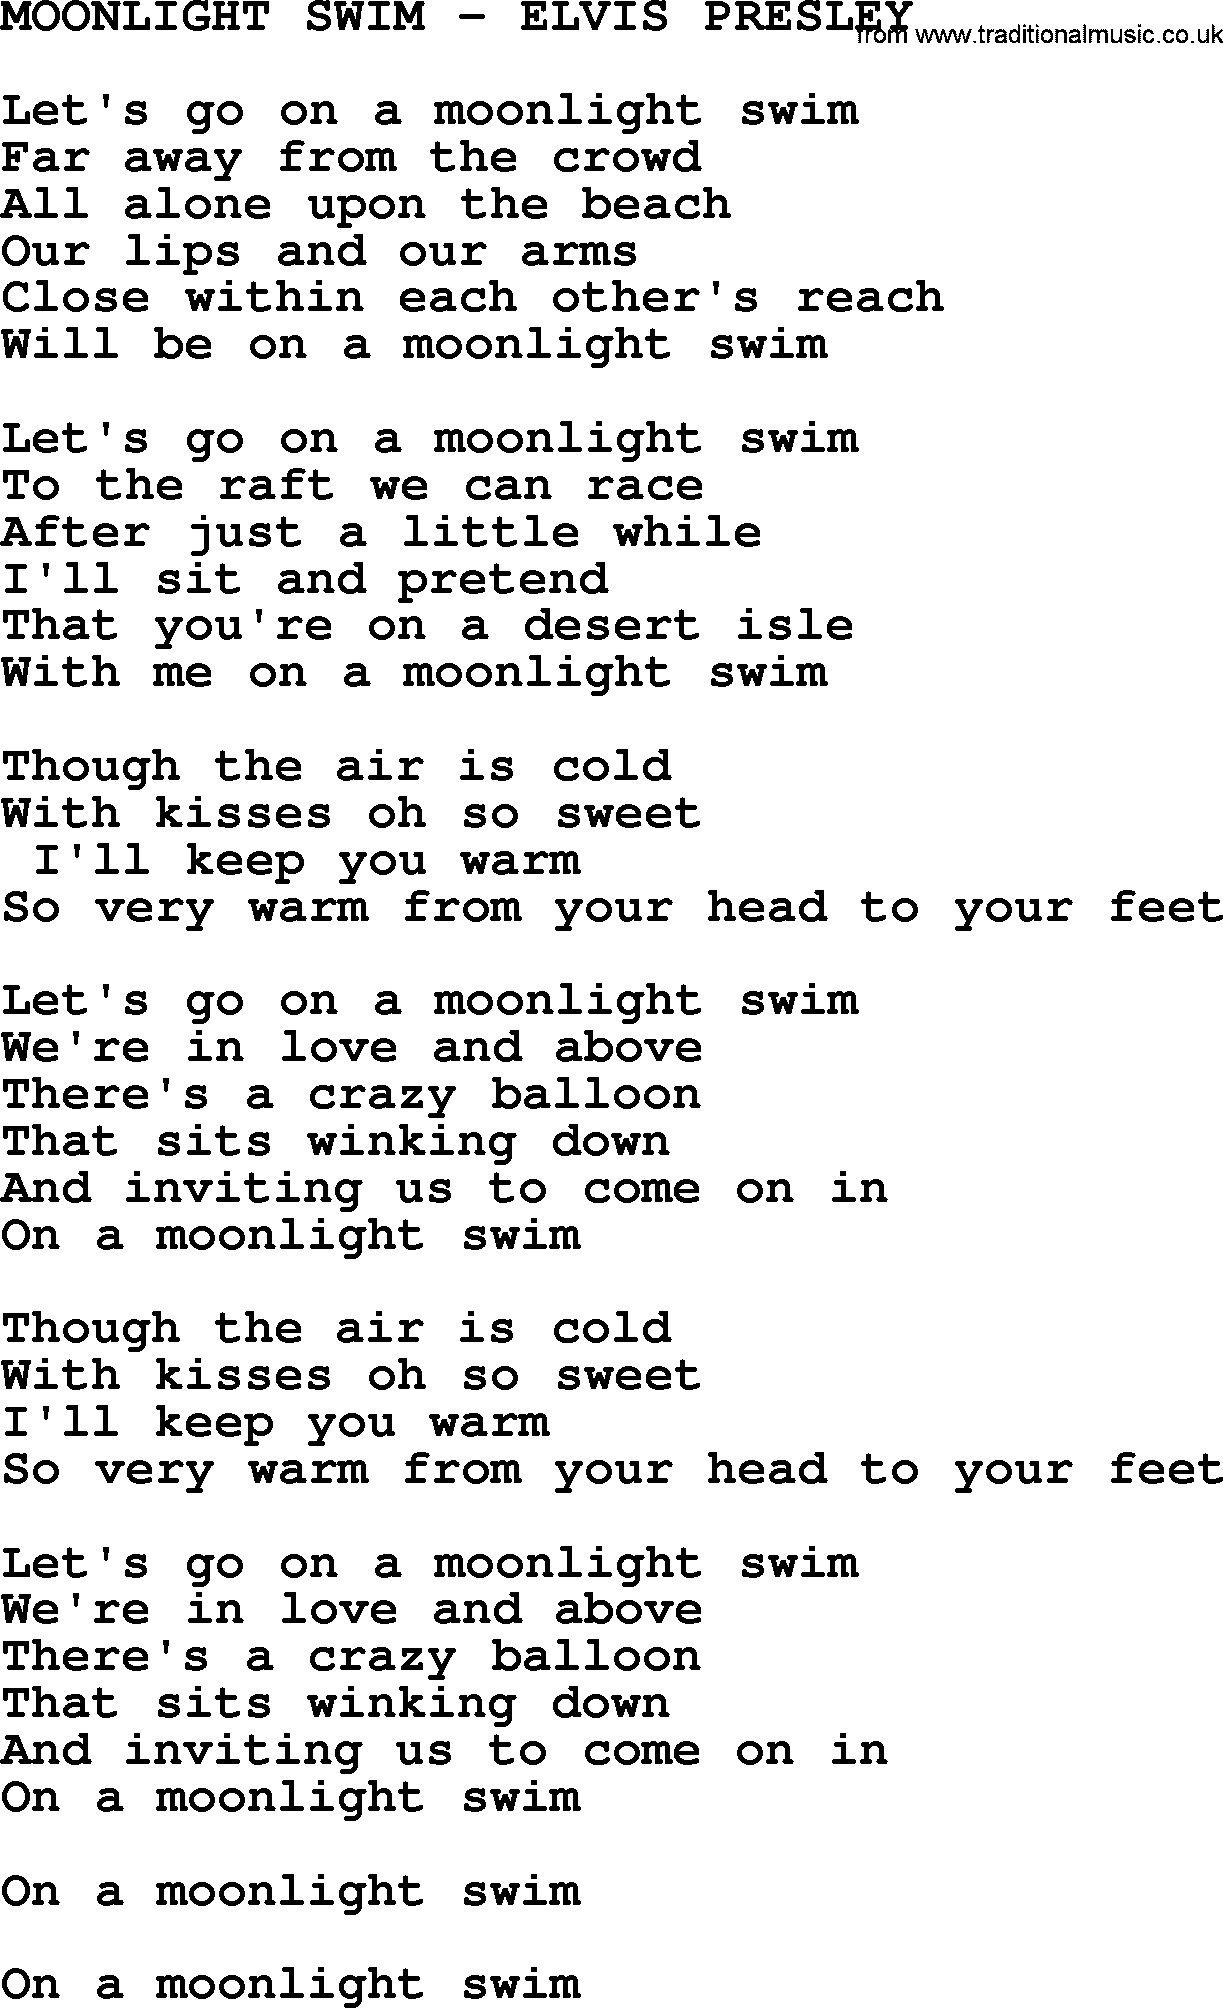 Moonlight swim elvis presley txt by elvis presley lyrics and chords for Swimming swimming in the swimming pool song lyrics